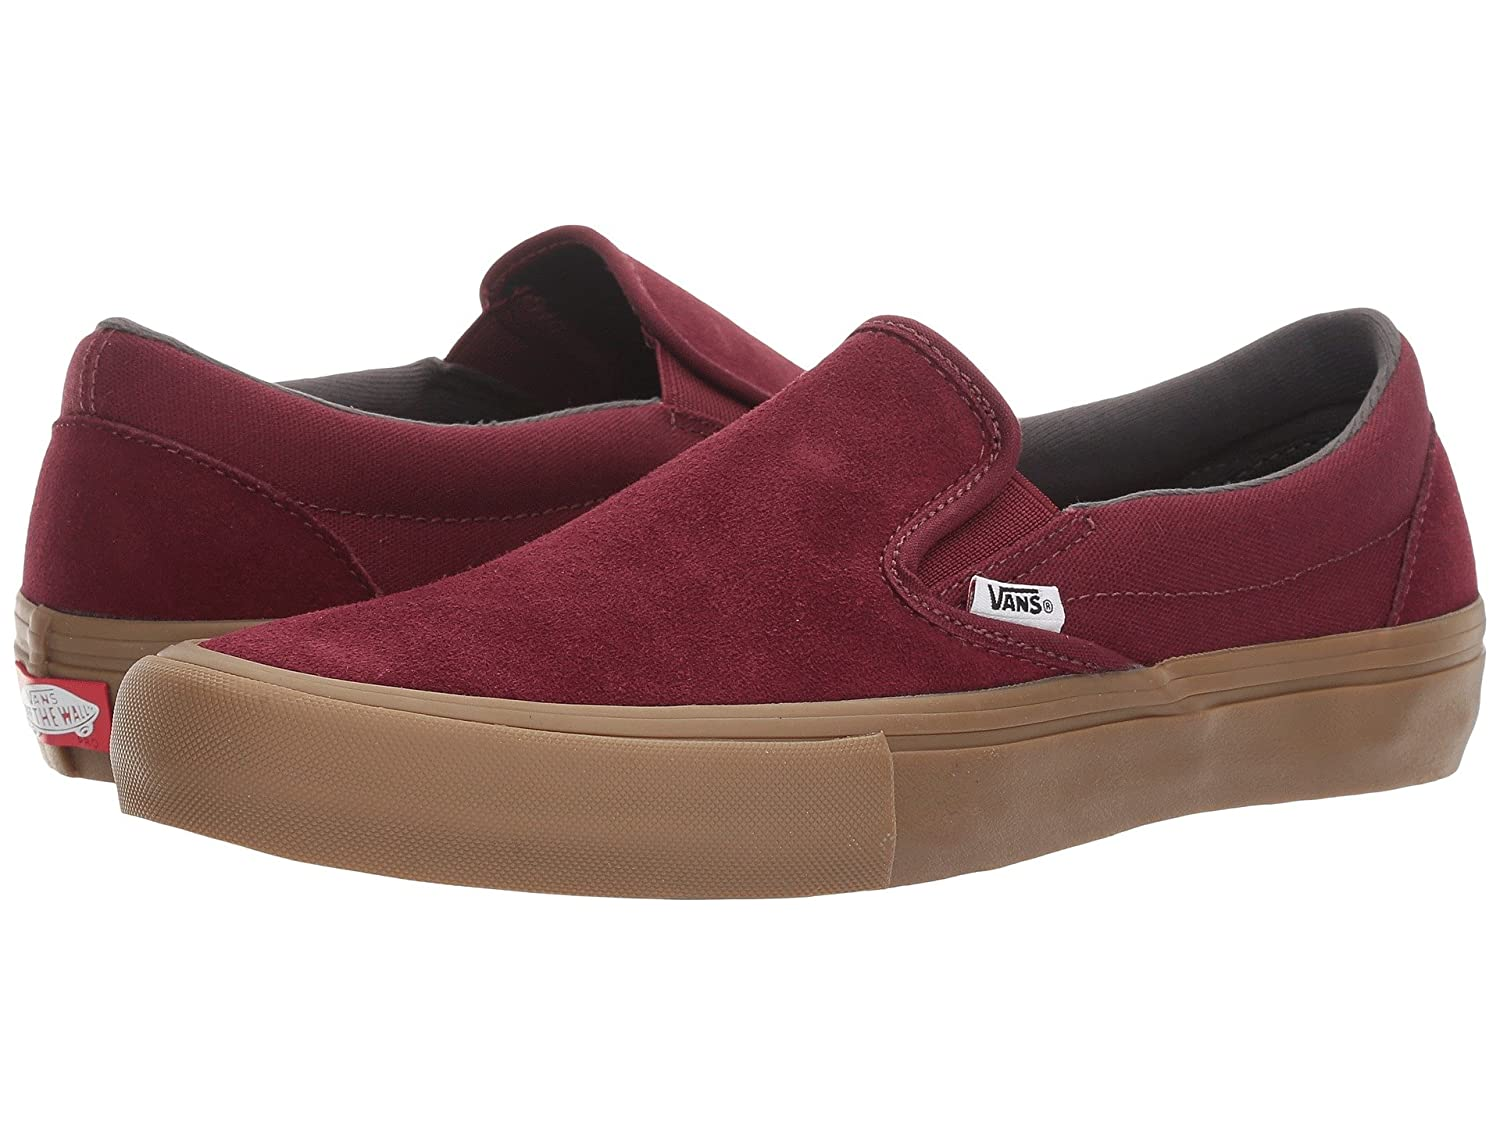 [バンズ] Vans メンズ Slip-On Pro スニーカー [並行輸入品] B06XNP9X79 25.0 cm D|Port Royal/Gum Port Royal/Gum 25.0 cm D